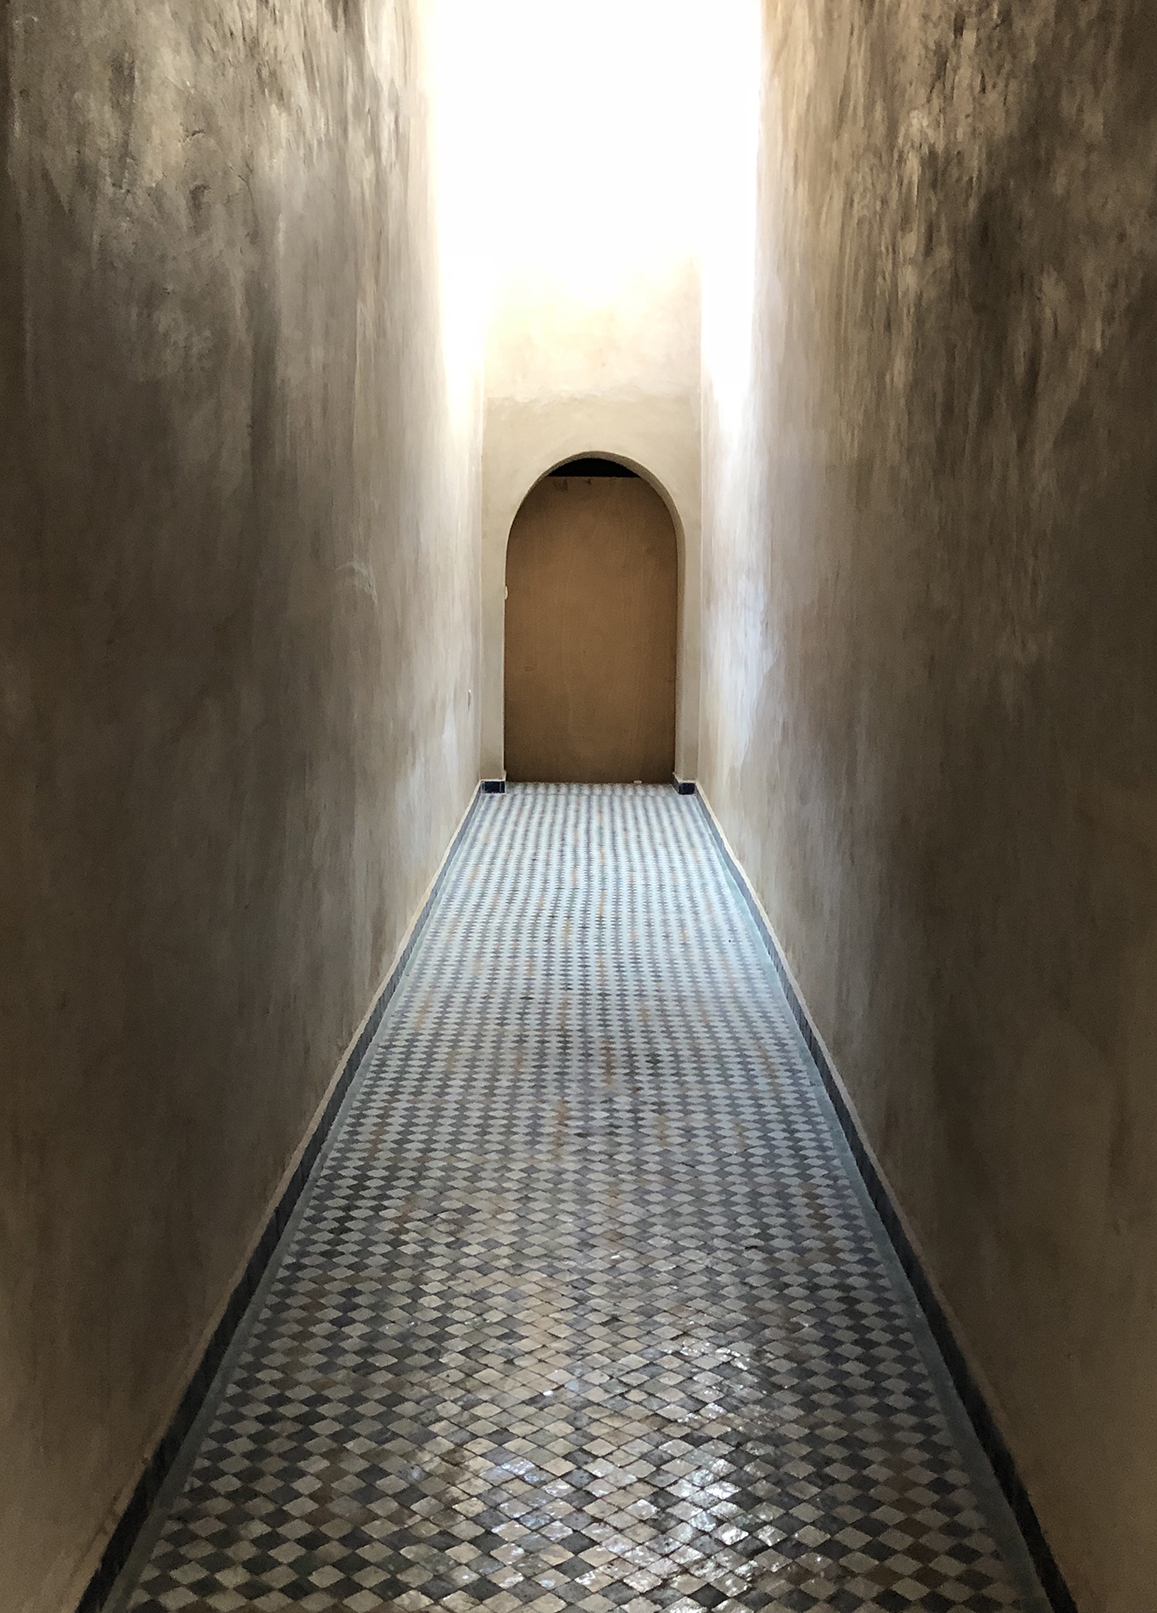 Bahia Palace Corridor, Marrakesh